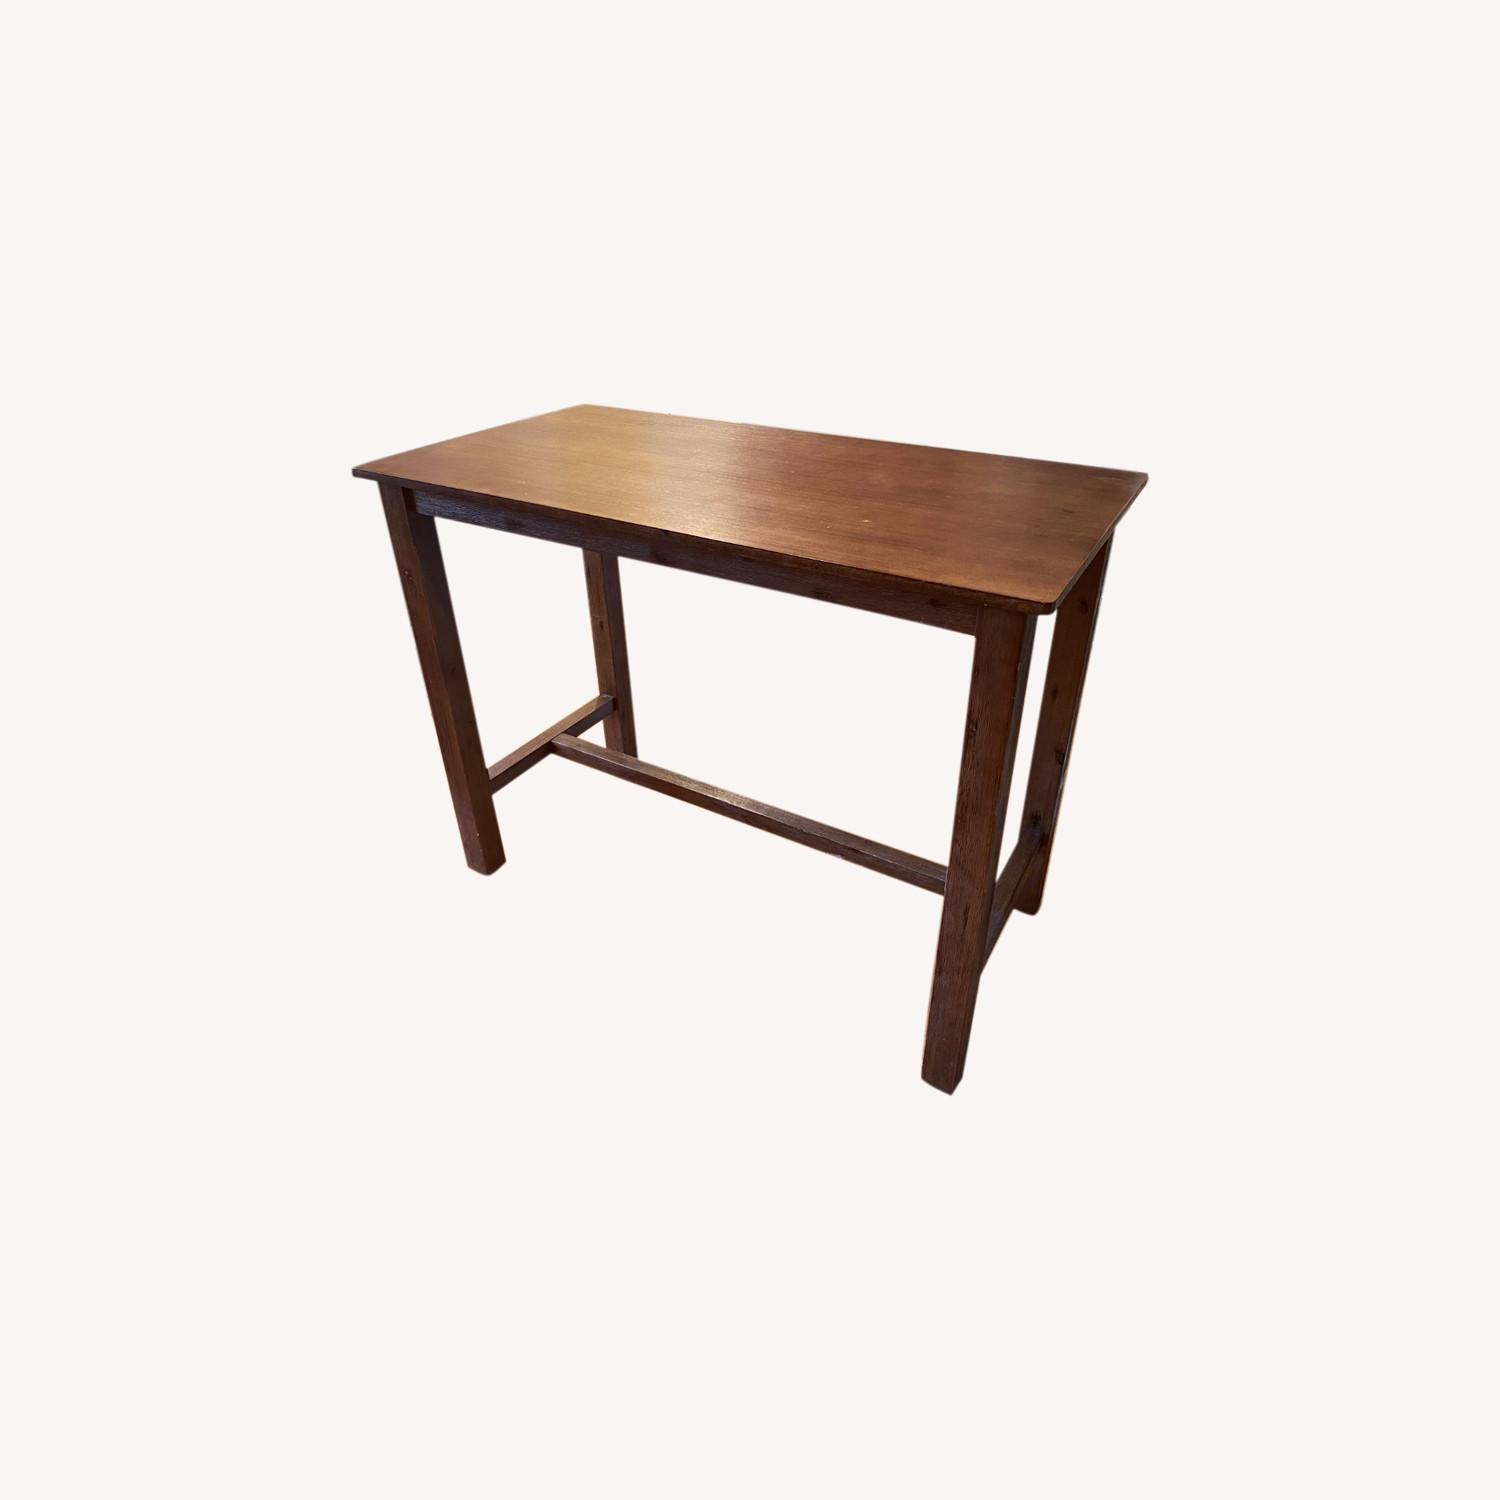 Wayfair Counter Height Rubberwood Solid Wood Dining Table - image-0